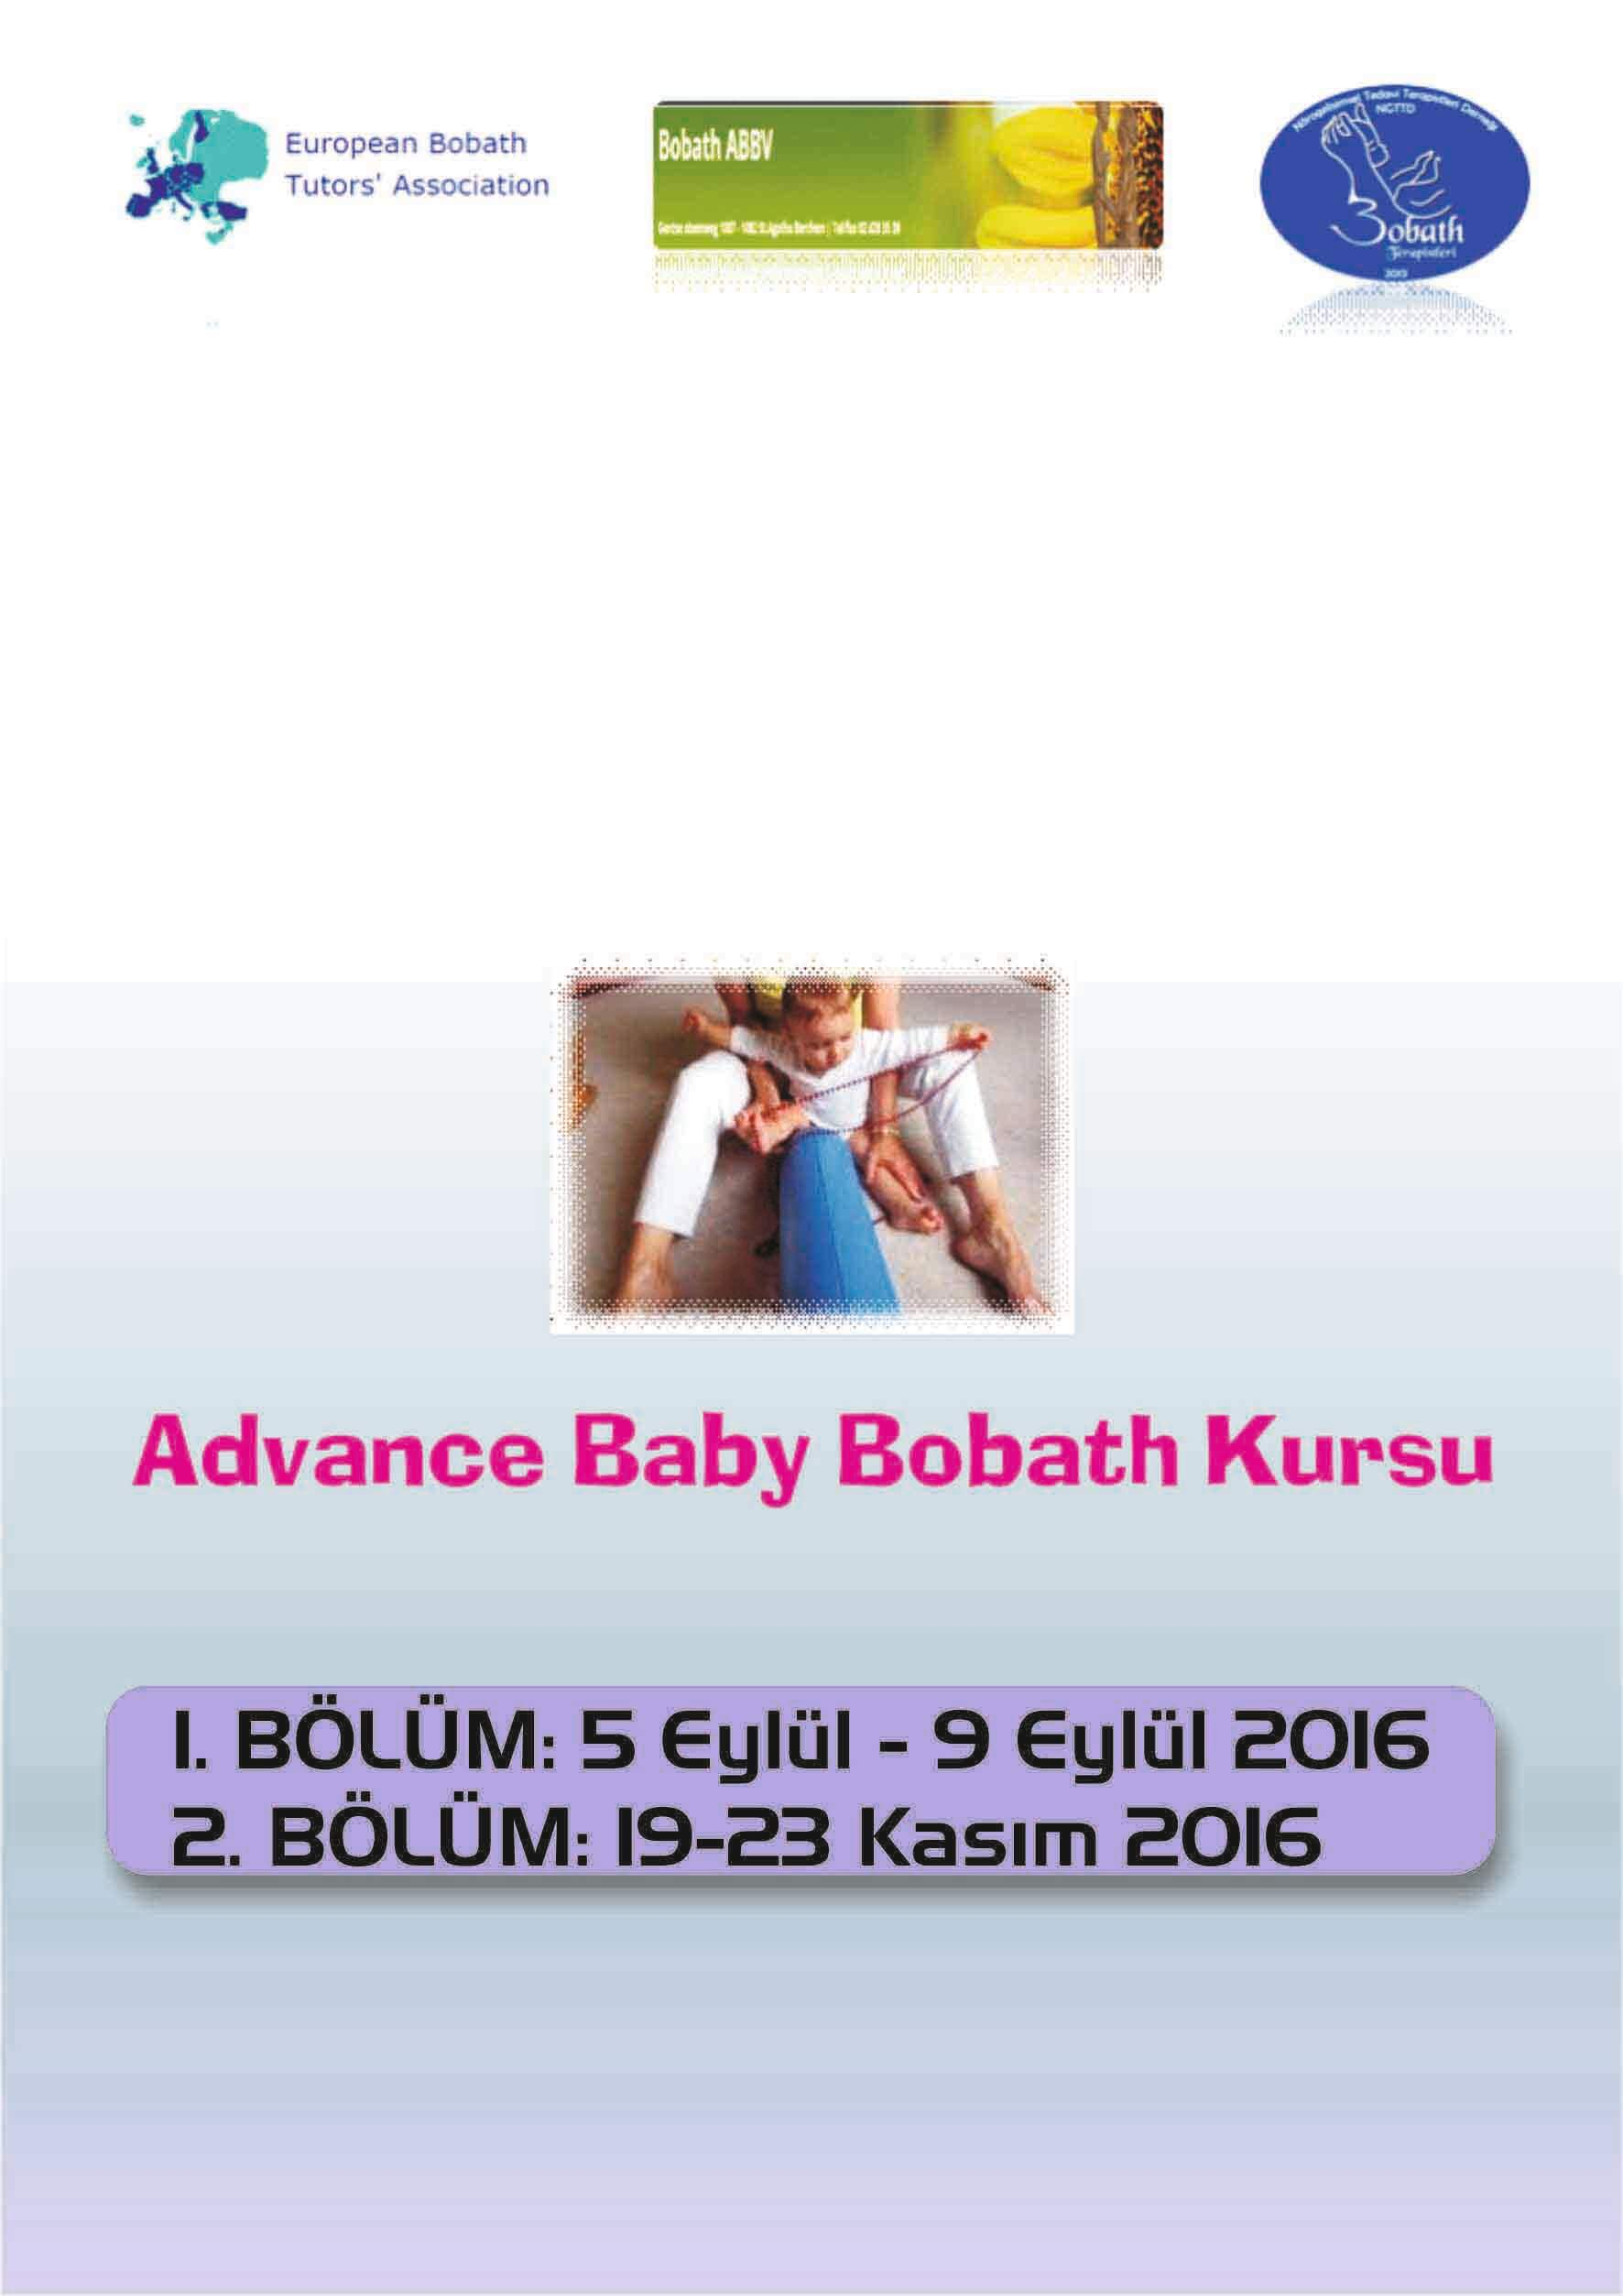 Advance Baby Bobath Kursu